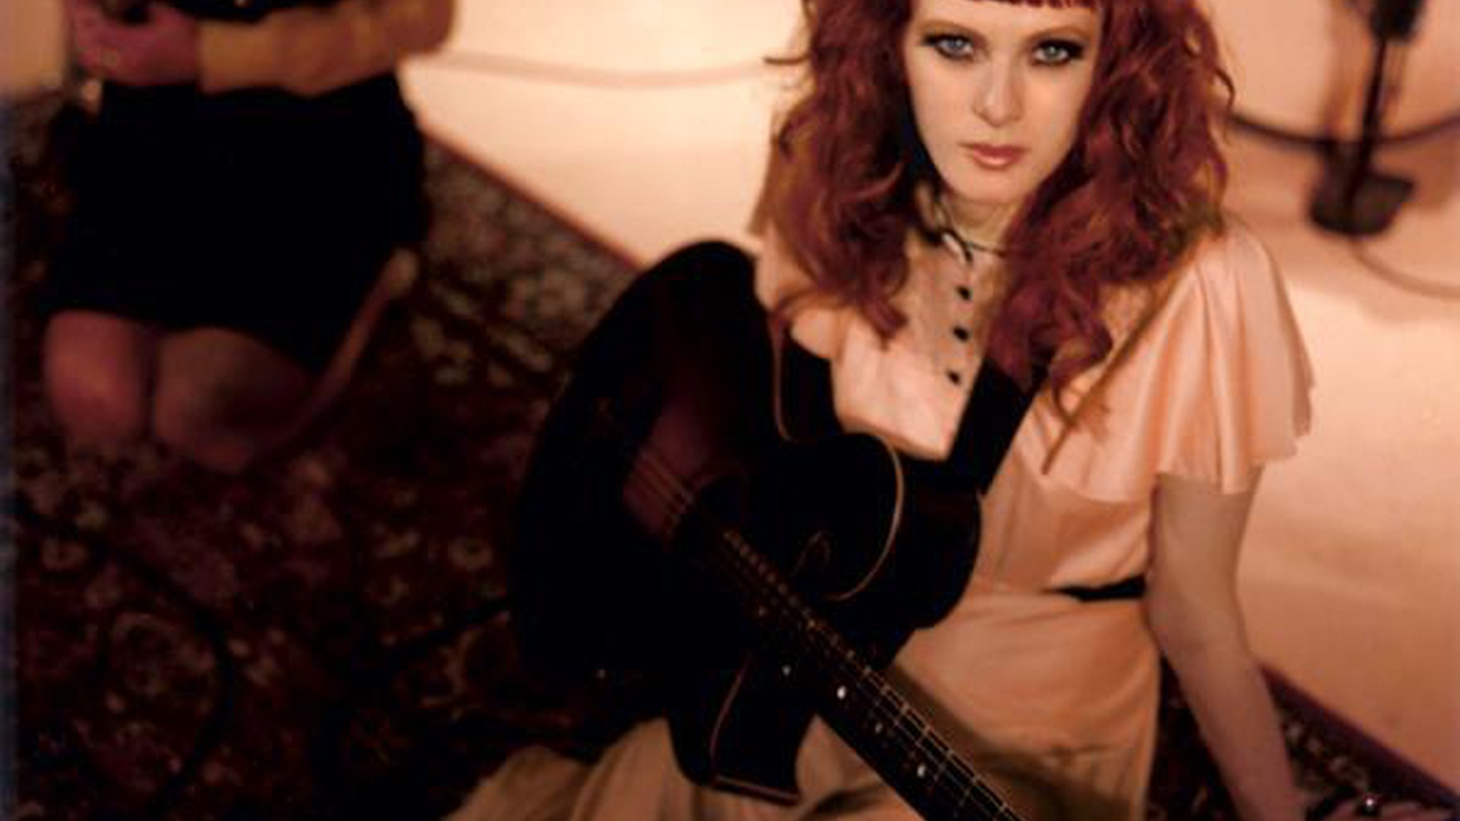 Karen Elson has it all-- she's a model, mother, wife of Jack White, and a talented singer in her own right. Her songs are elegantly crafted and her voice is hauntingly beautiful. We're thrilled to feature a live session with this chanteuse and her stellar band on Morning Becomes Eclectic at 11:15am.